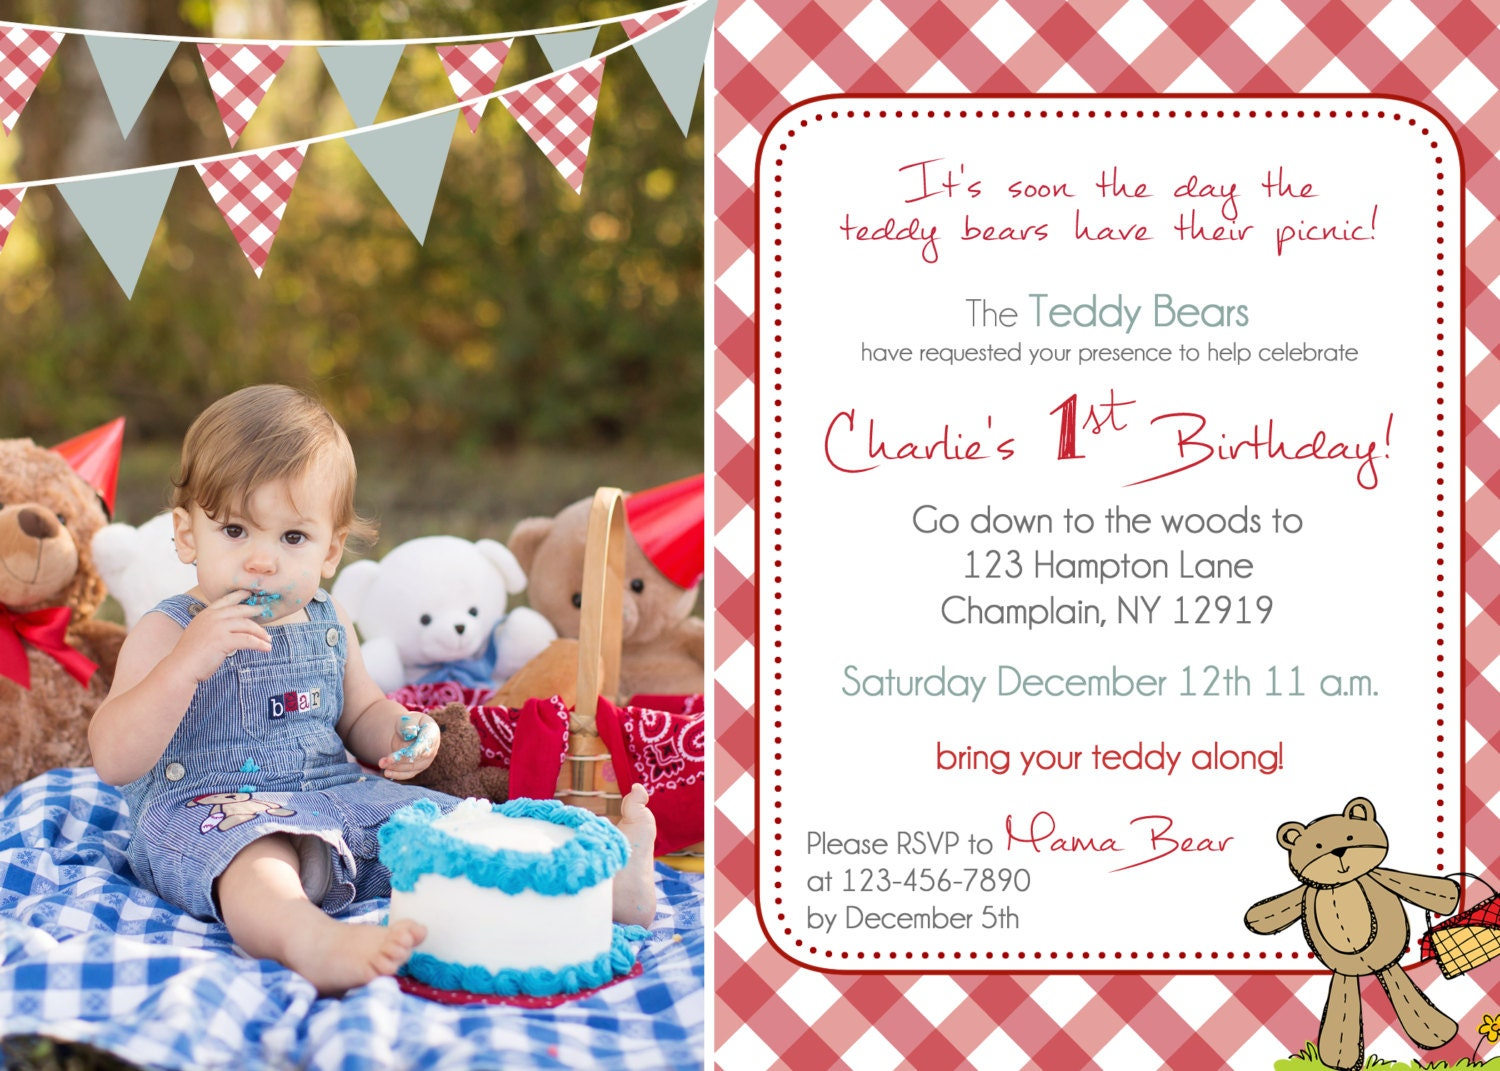 Teddy bears picnic – Teddy Bears Picnic Party Invitations